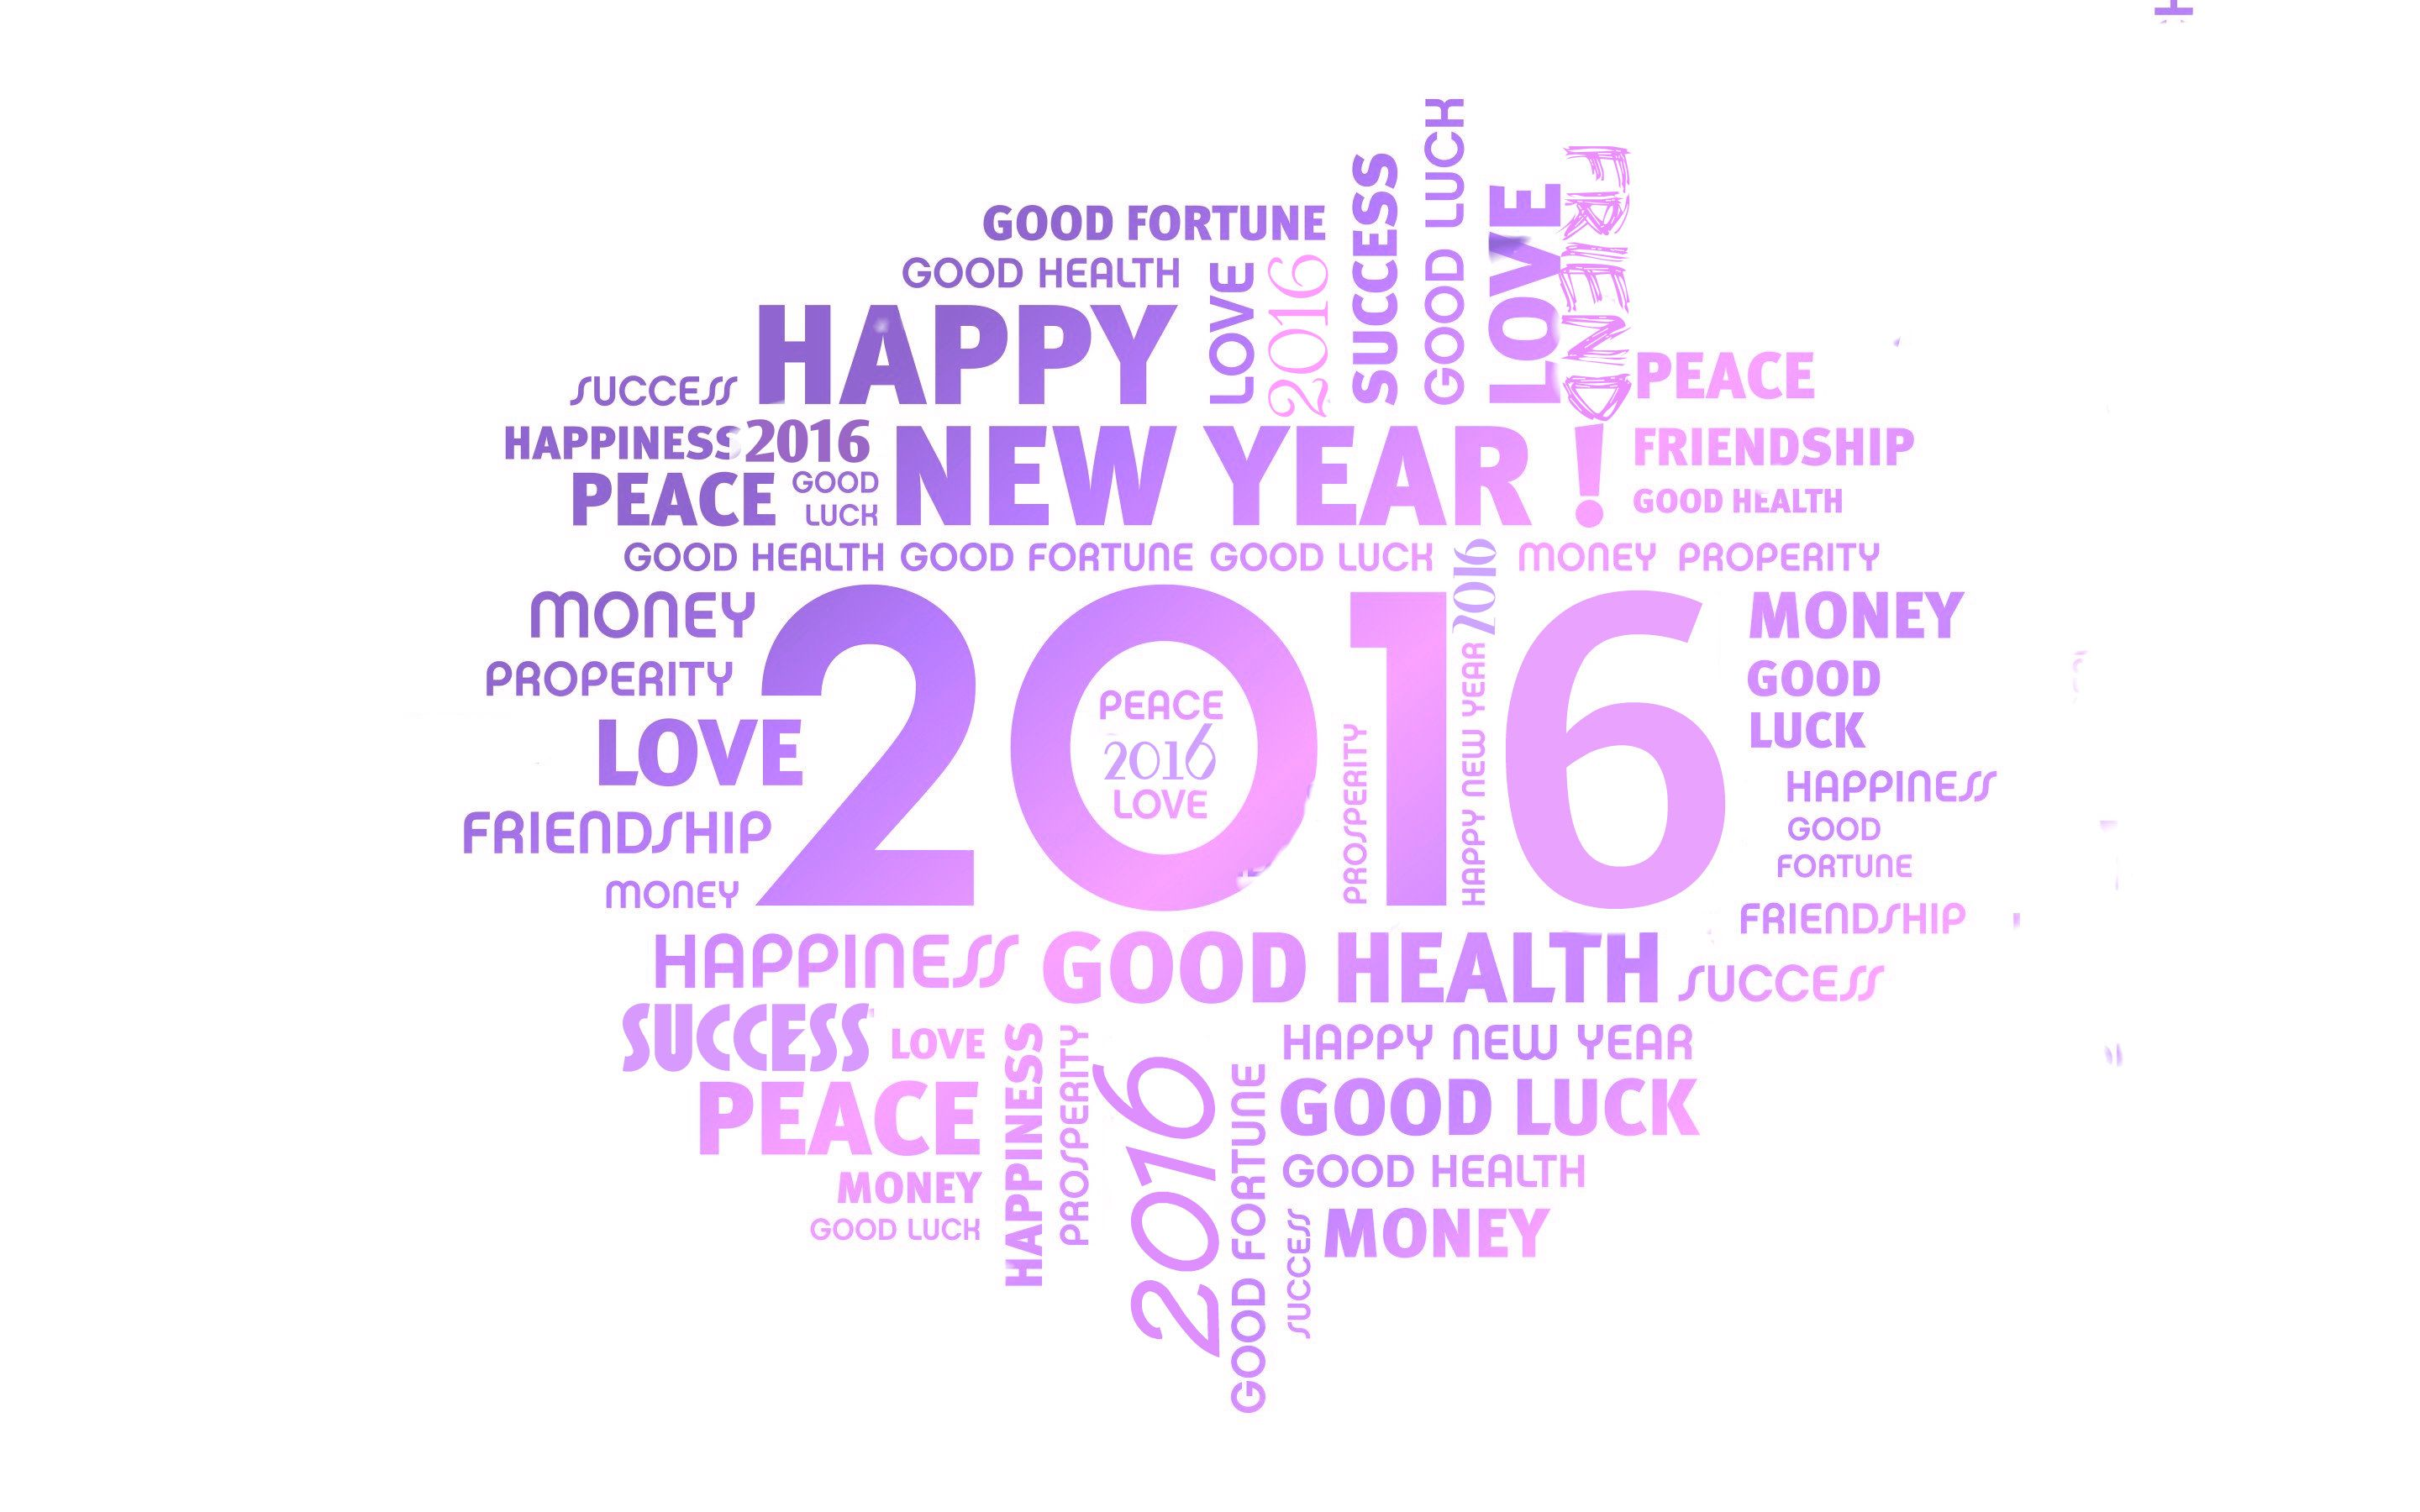 Top 100 most amazing happy new year wishes greetings quotes - Top 25 Best New Year Images Ideas On Pinterest New Year Pictures Chinese New Year Images And Images For New Year